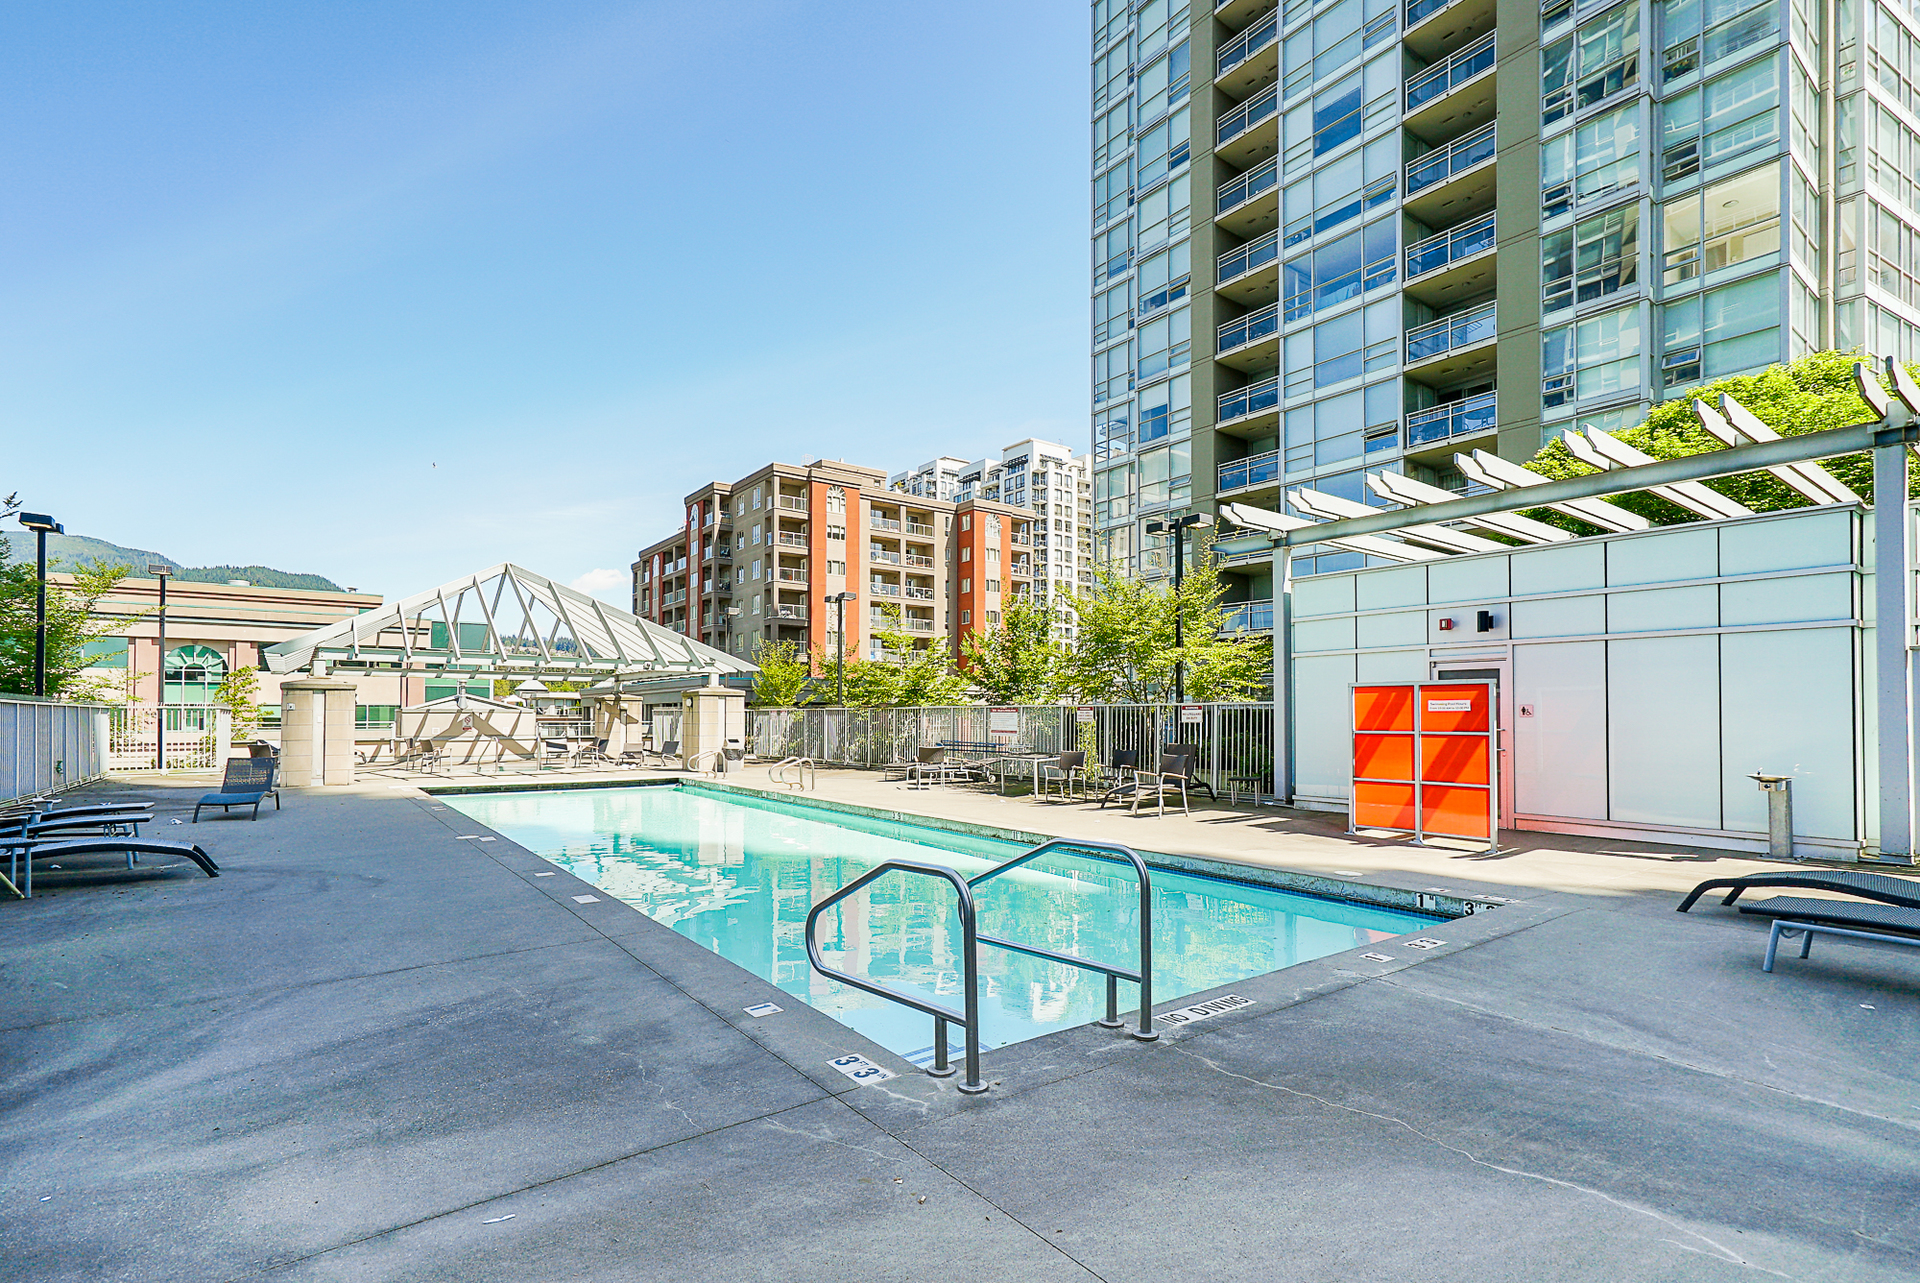 unit-3307-2975-atlantic-avenue-coquitlam-26 at 3307 - 2975 Atlantic Avenue, North Coquitlam, Coquitlam